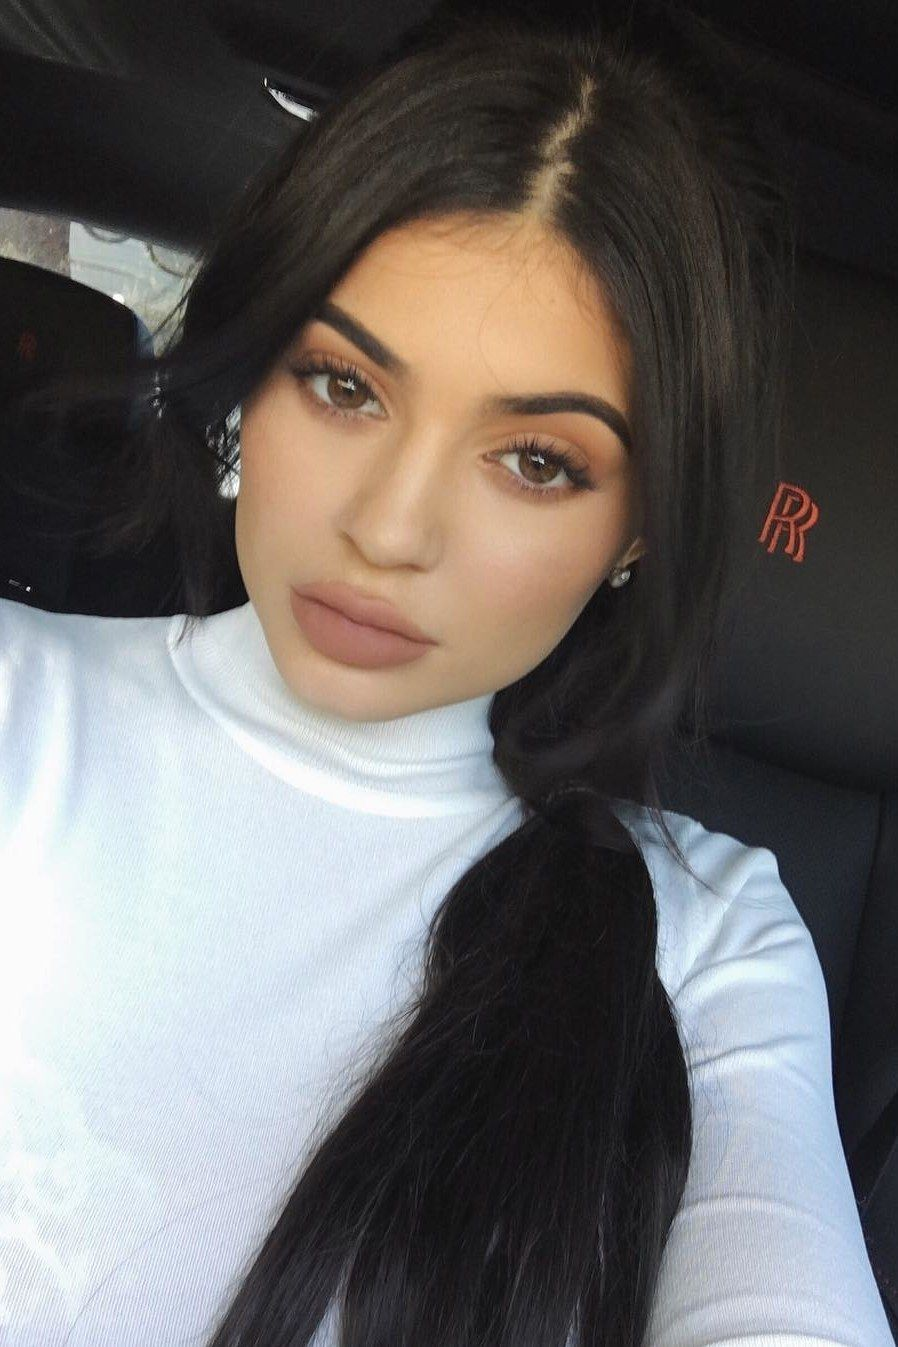 Kylie Jenner S Braided Ponytail Is The Perfect Lazy Girl Hairstyle Lazy Girl Hairstyles Jenner Hair Kylie Jenner Hair